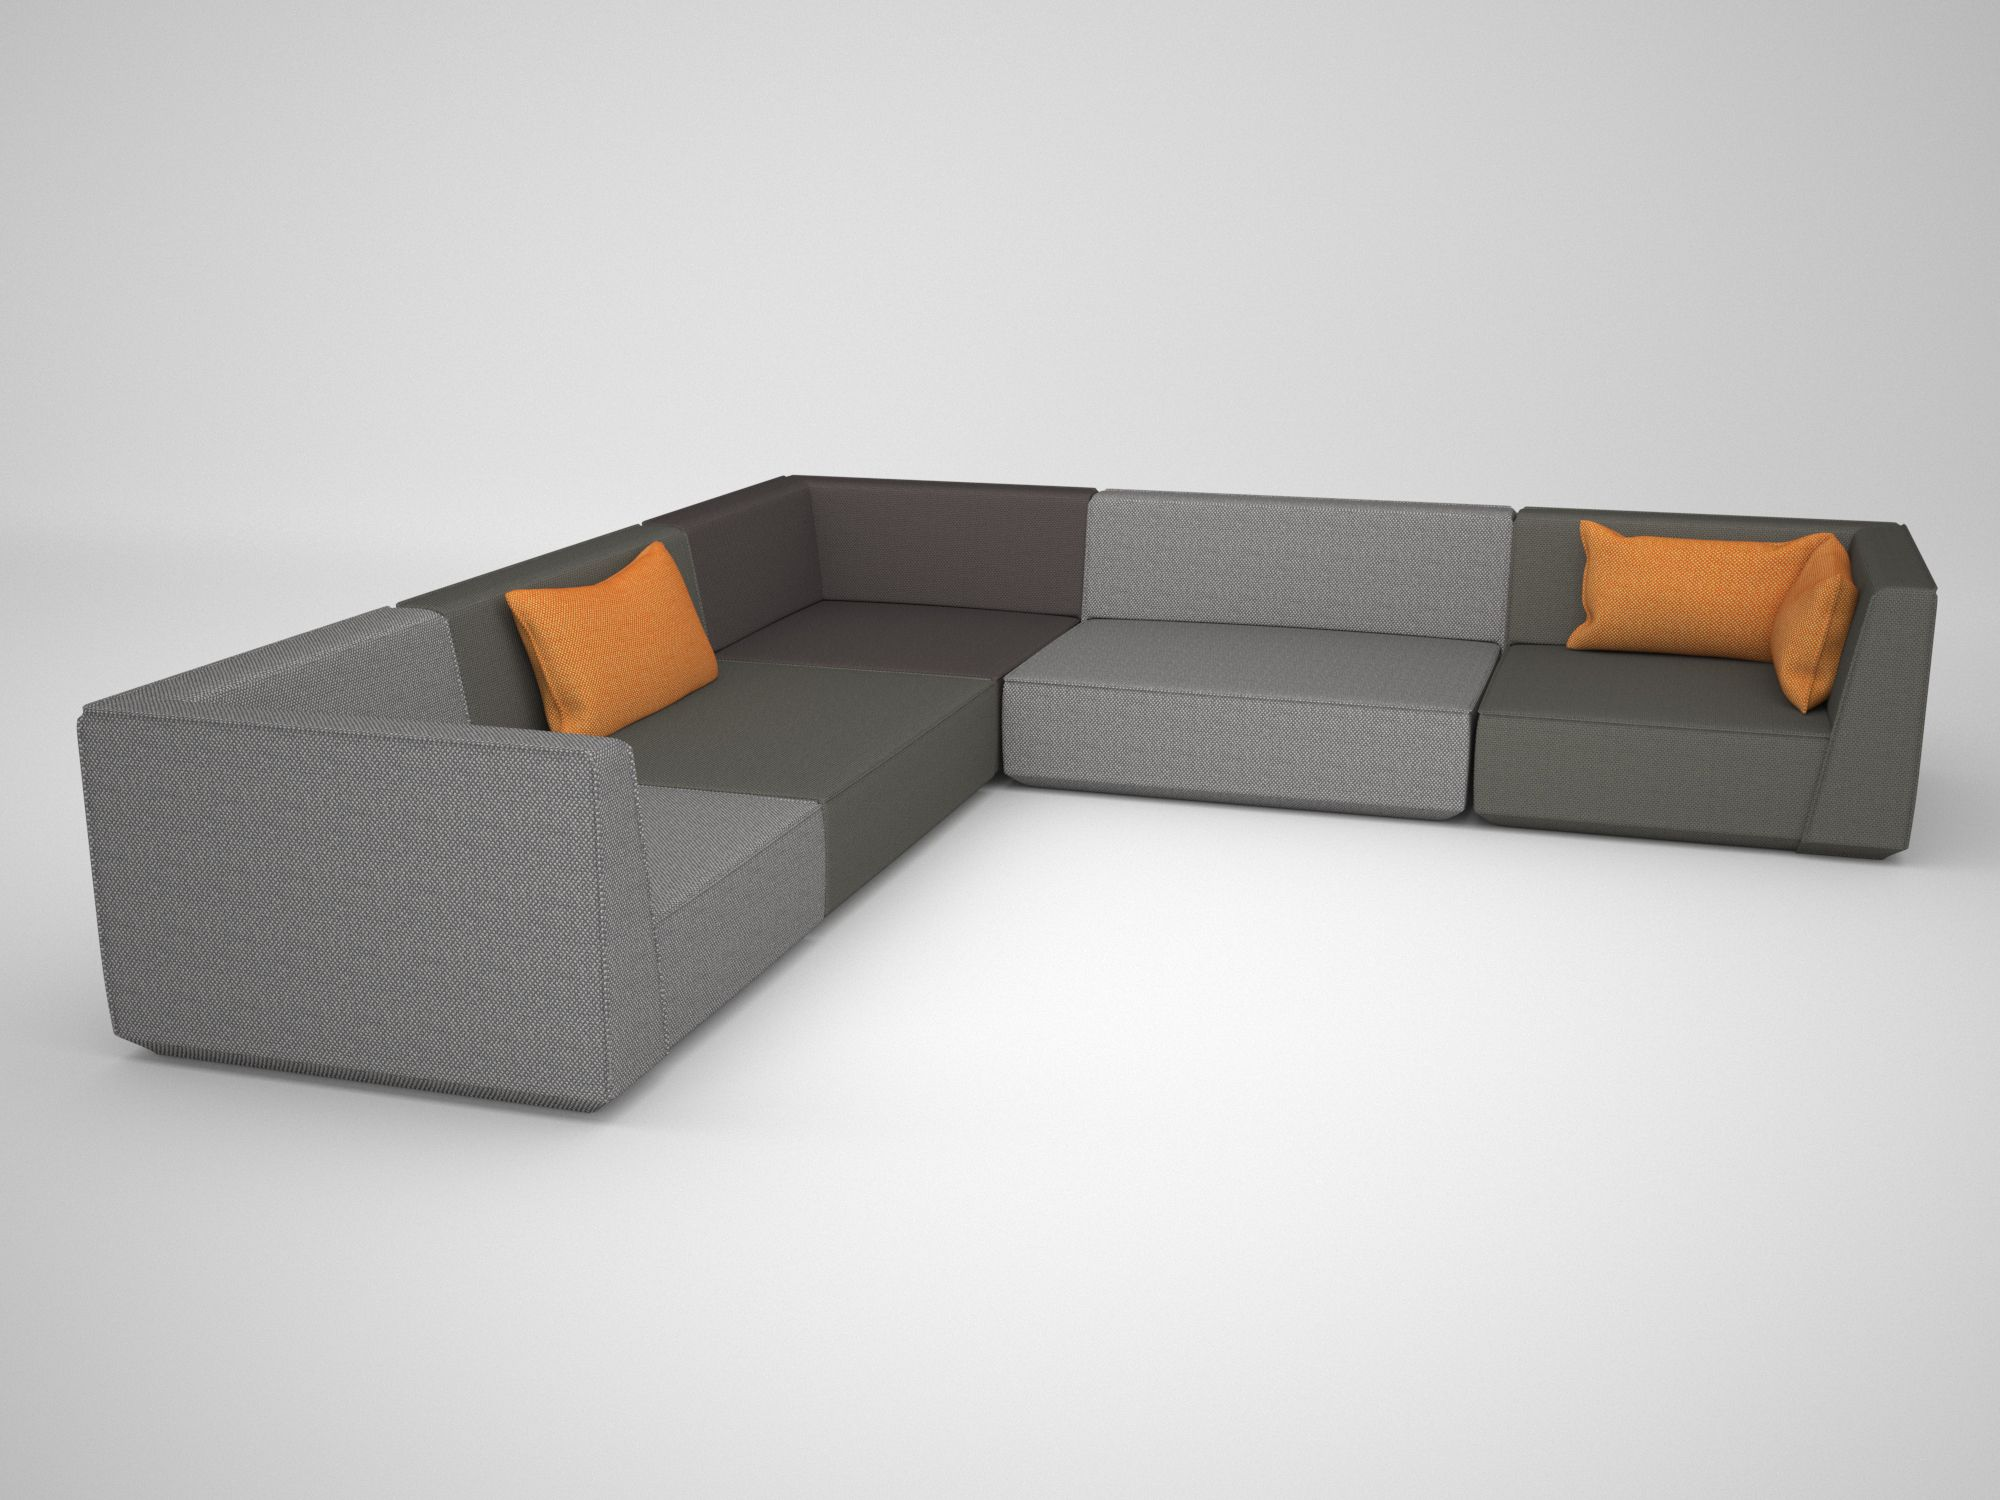 Ecksofa l form  Puristisches Ecksofa in L-Form / Streamlined corner sofa in L ...